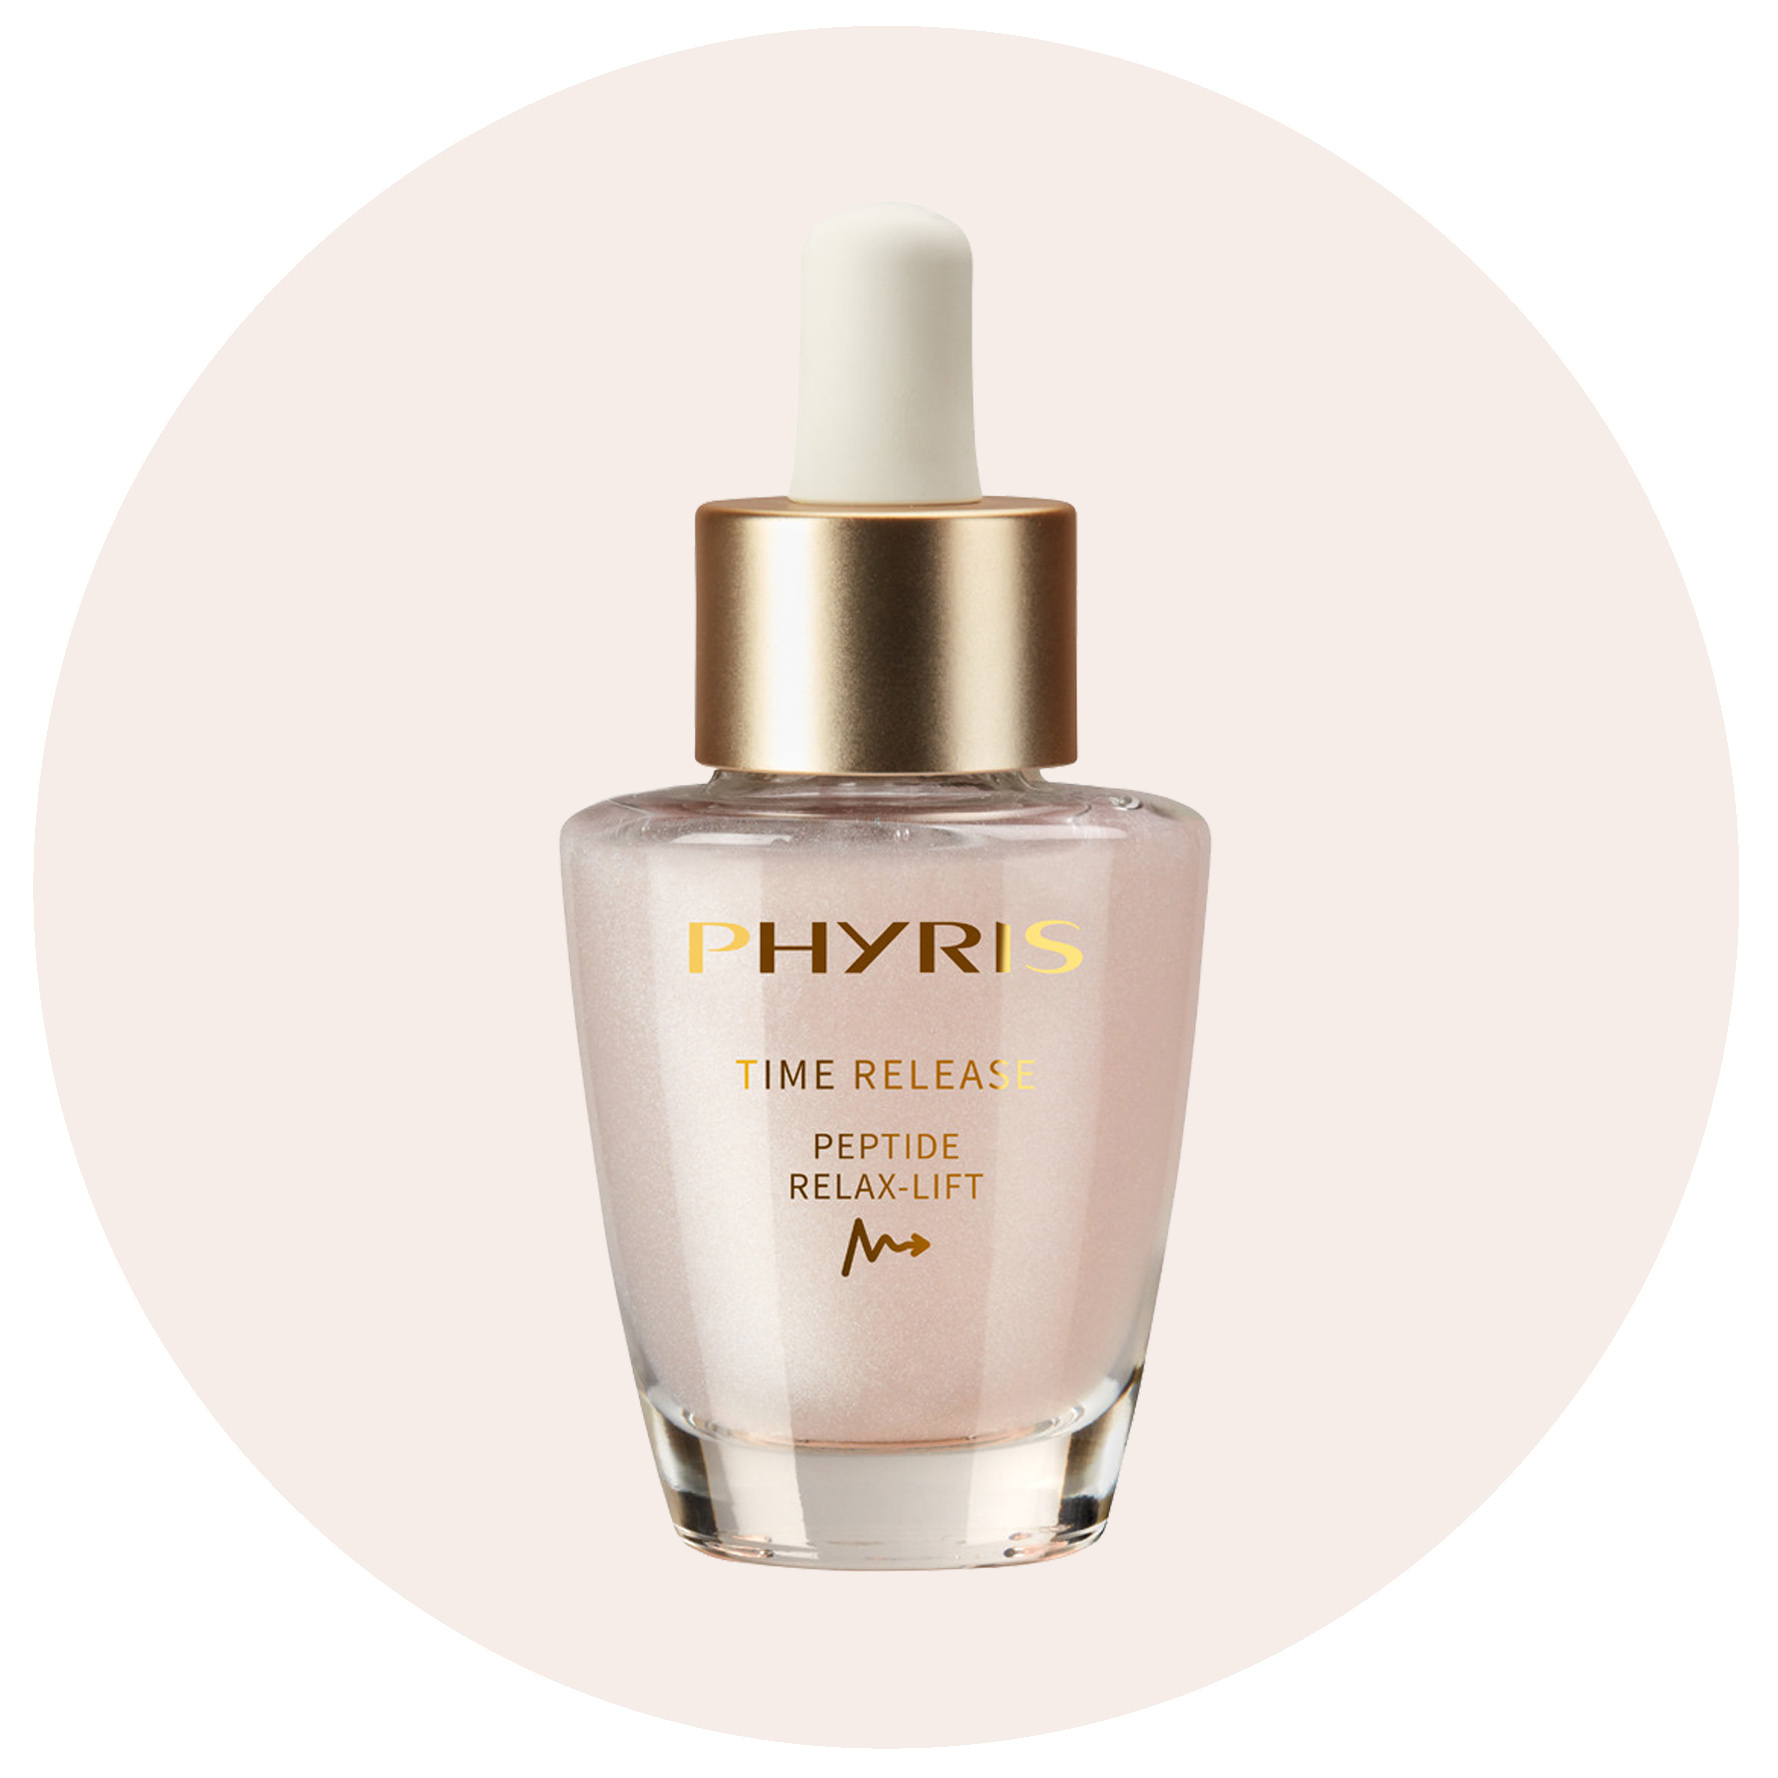 Phyris Peptide Relax-Lift